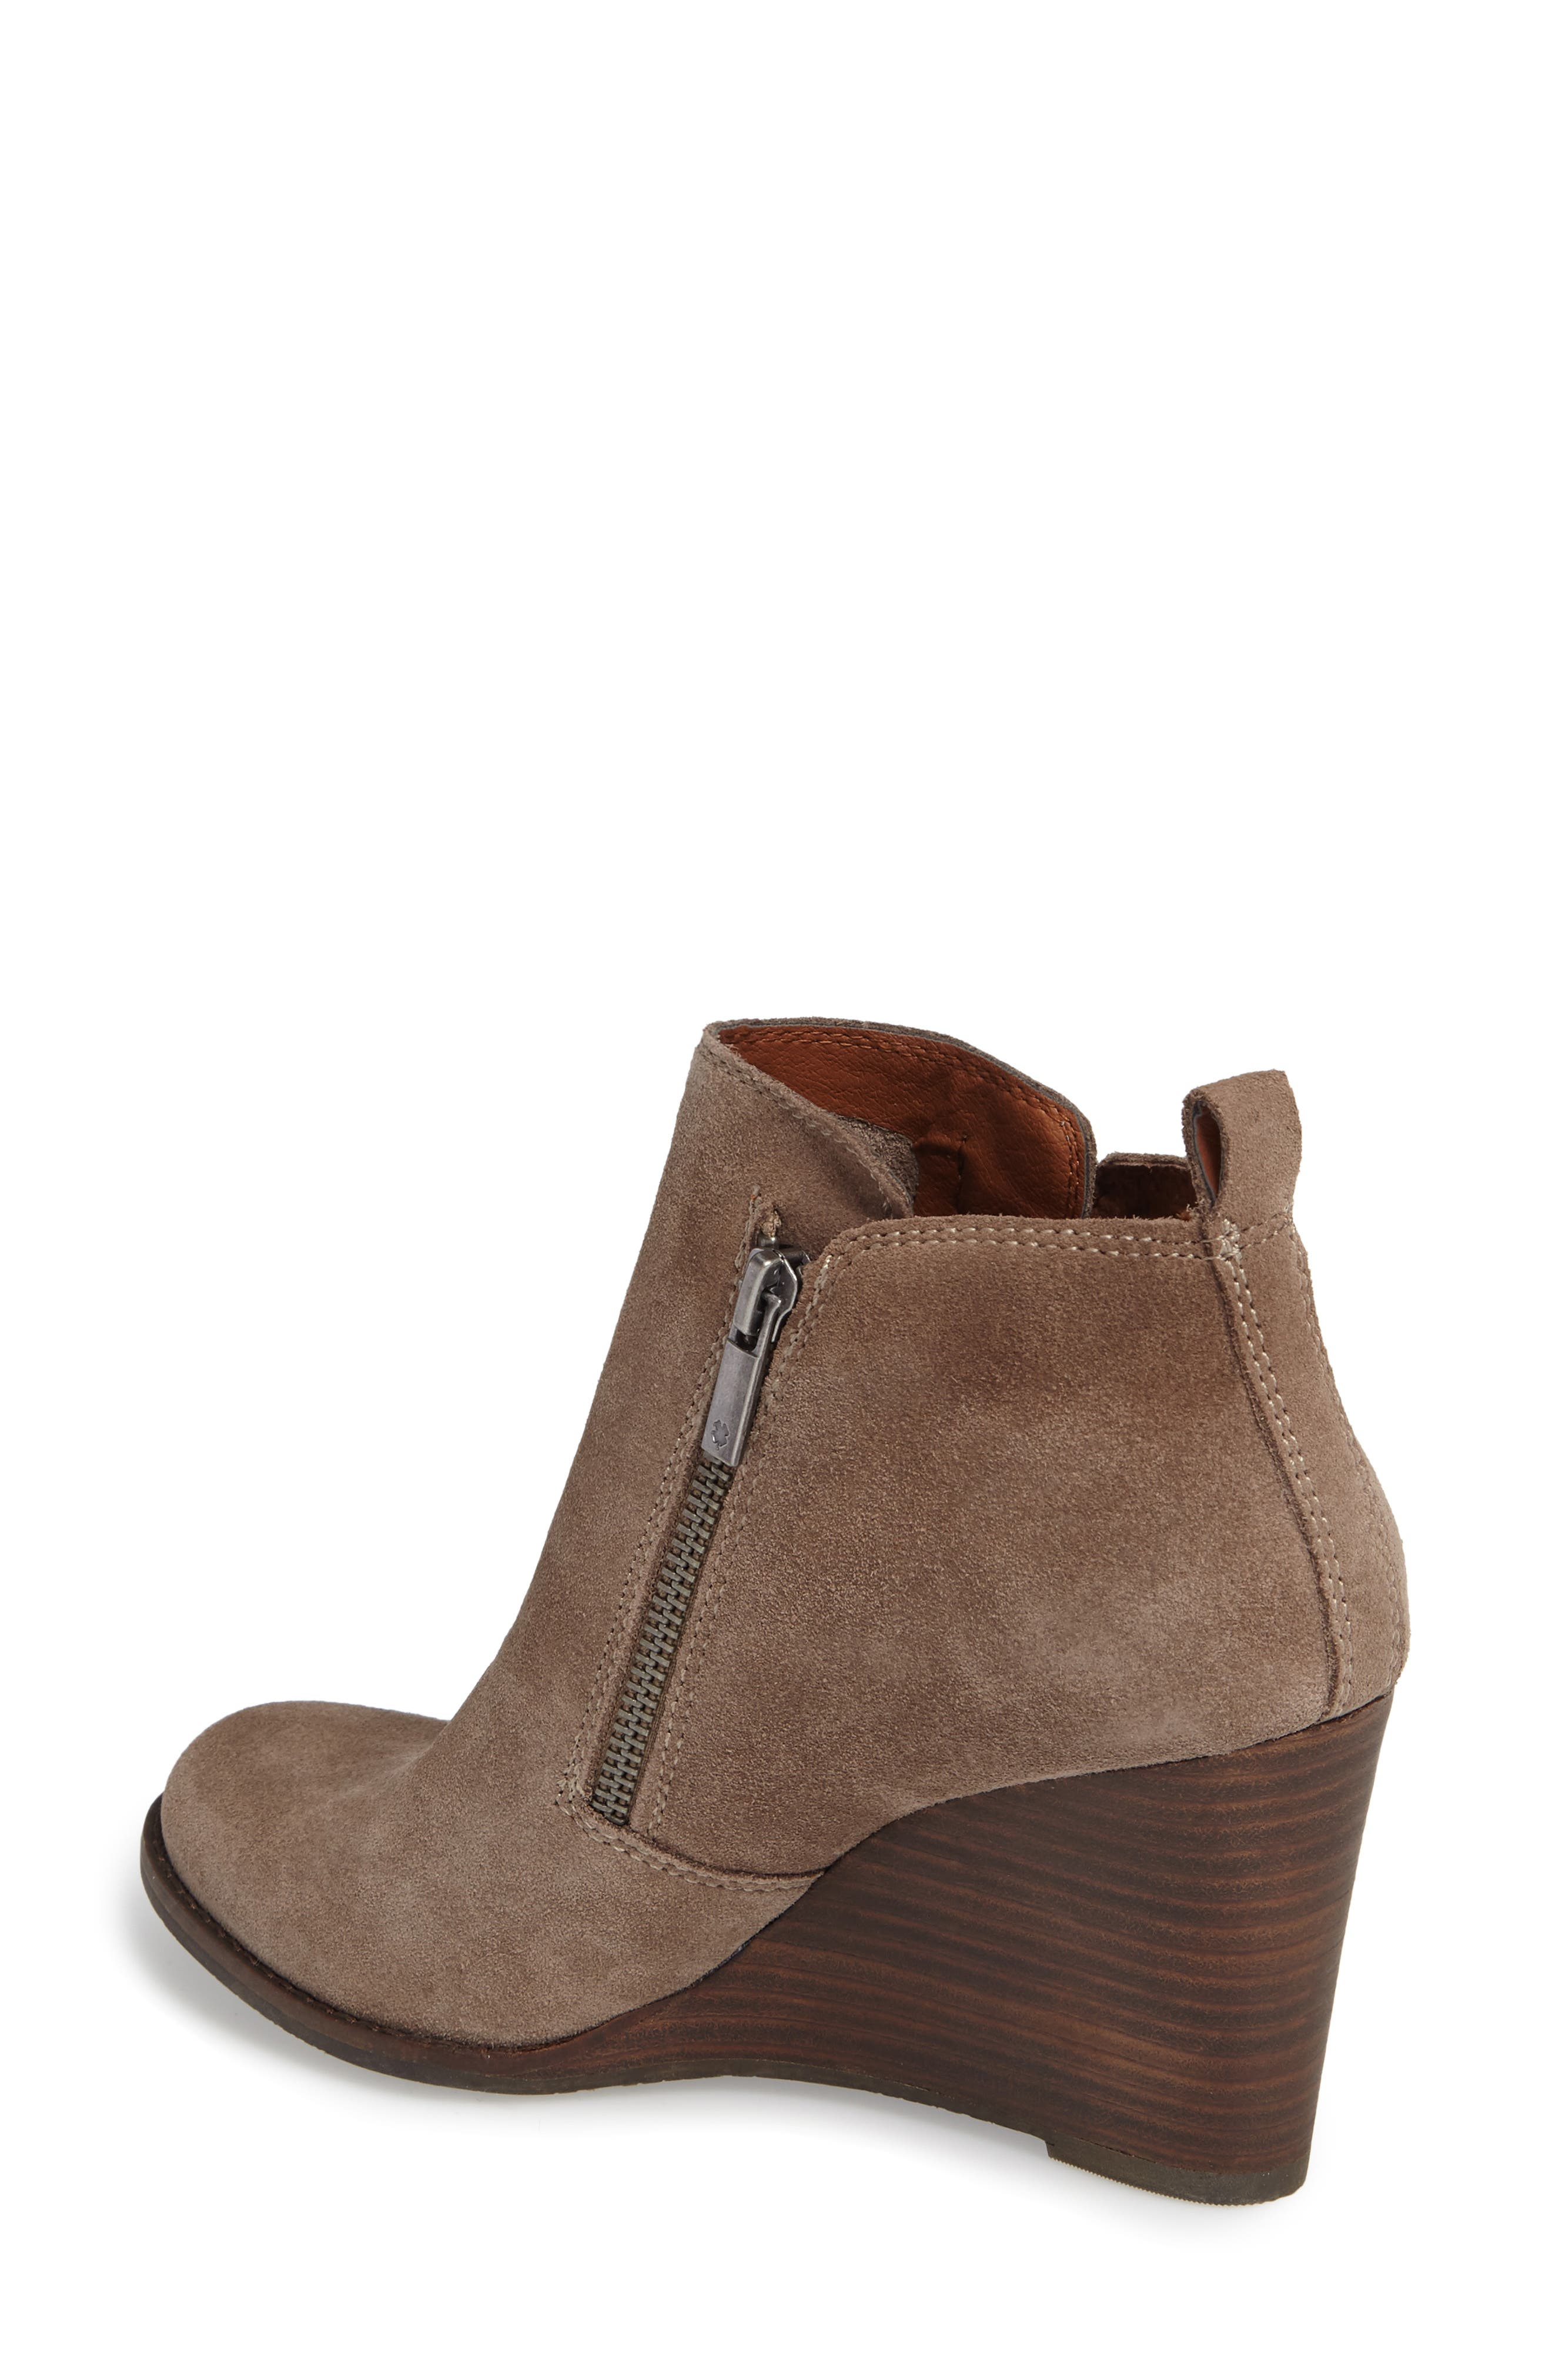 Yesterr Wedge Bootie,                             Alternate thumbnail 2, color,                             Brindle Suede